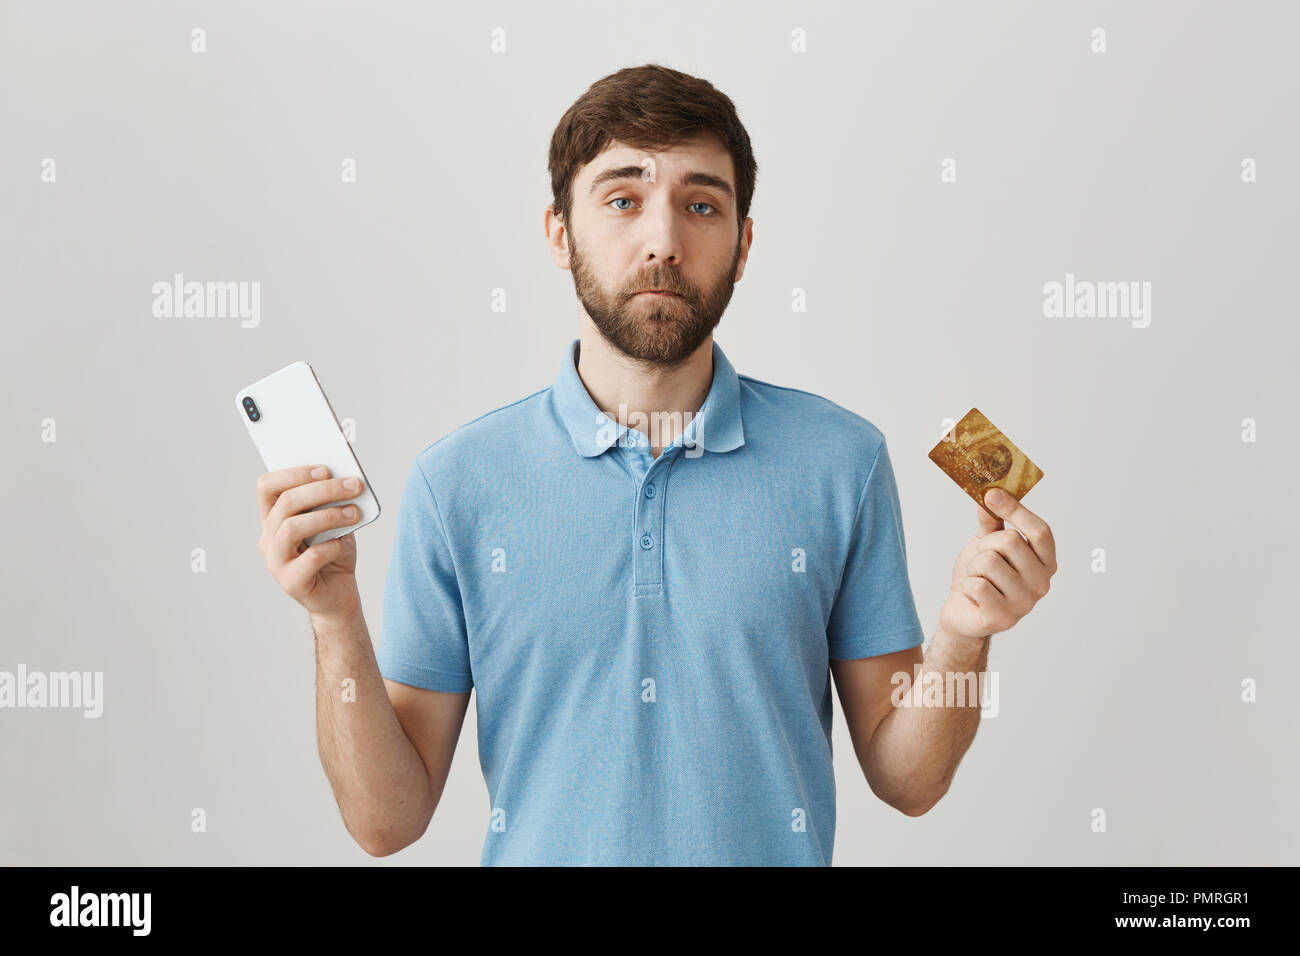 Useless credit card with low balance. Portrait of gloomy displeased young bearded guy holding smartphone and bank card, having problems with payment online, standing over gray background Stock Photo